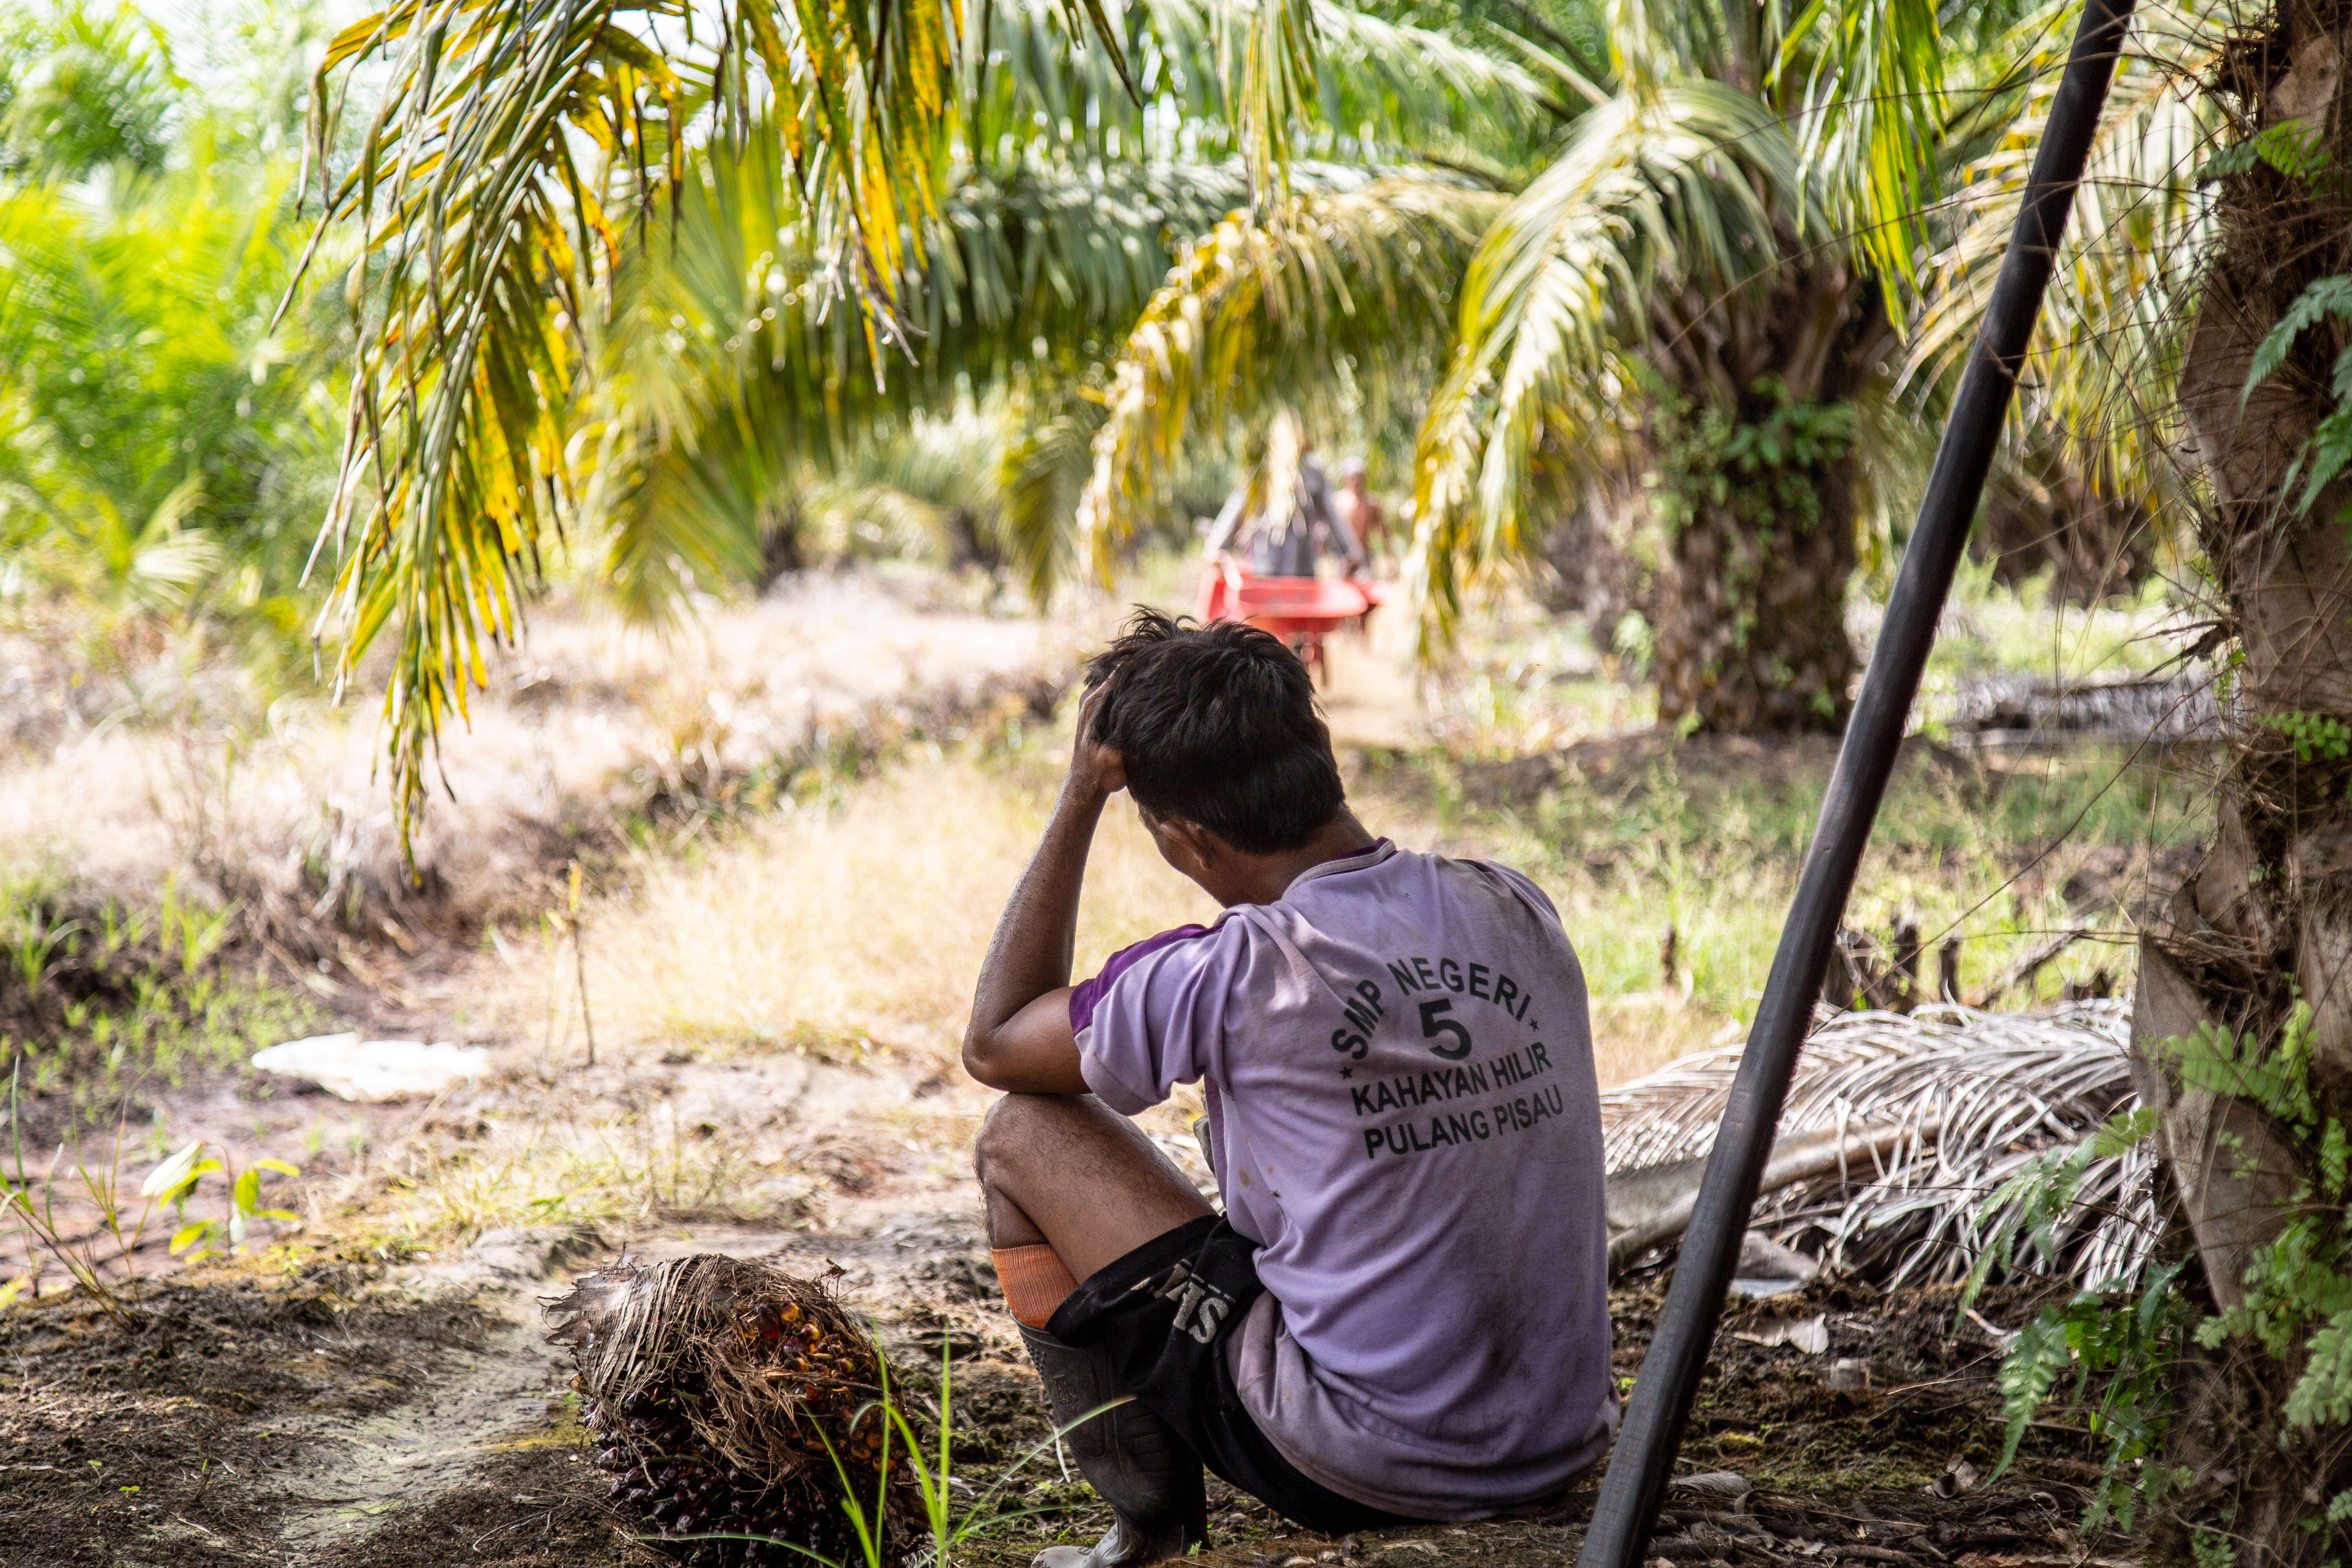 EU Parliament must vote to end human rights and environmental abuse in supply chains